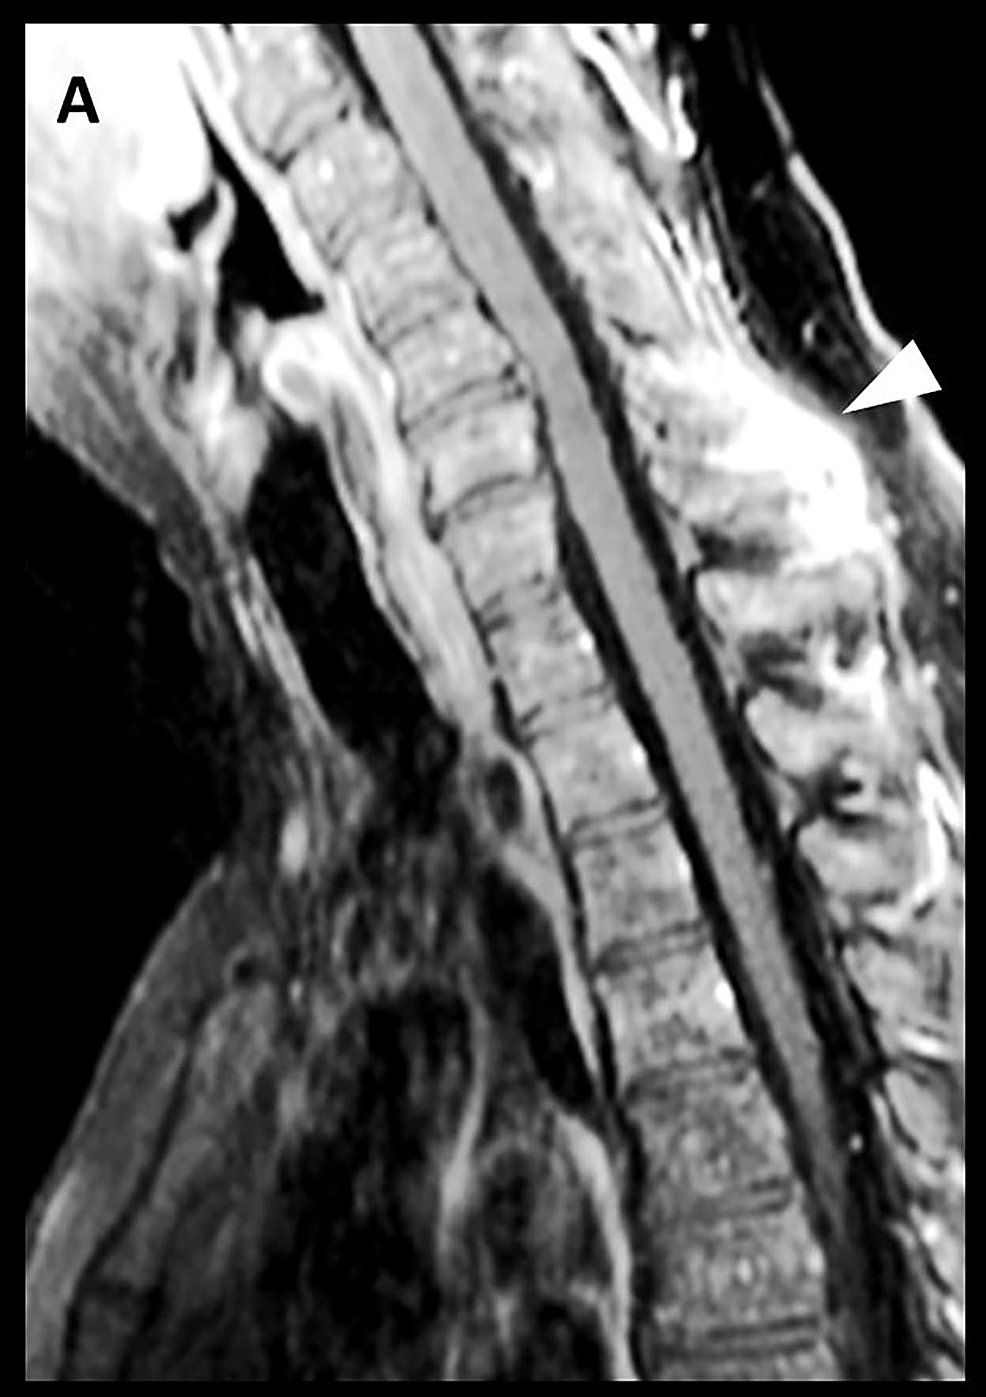 Magnetic-resonance-imaging-(MRI)-with-contrast-of-the-cervical-spine,-sagittal-view-(A)